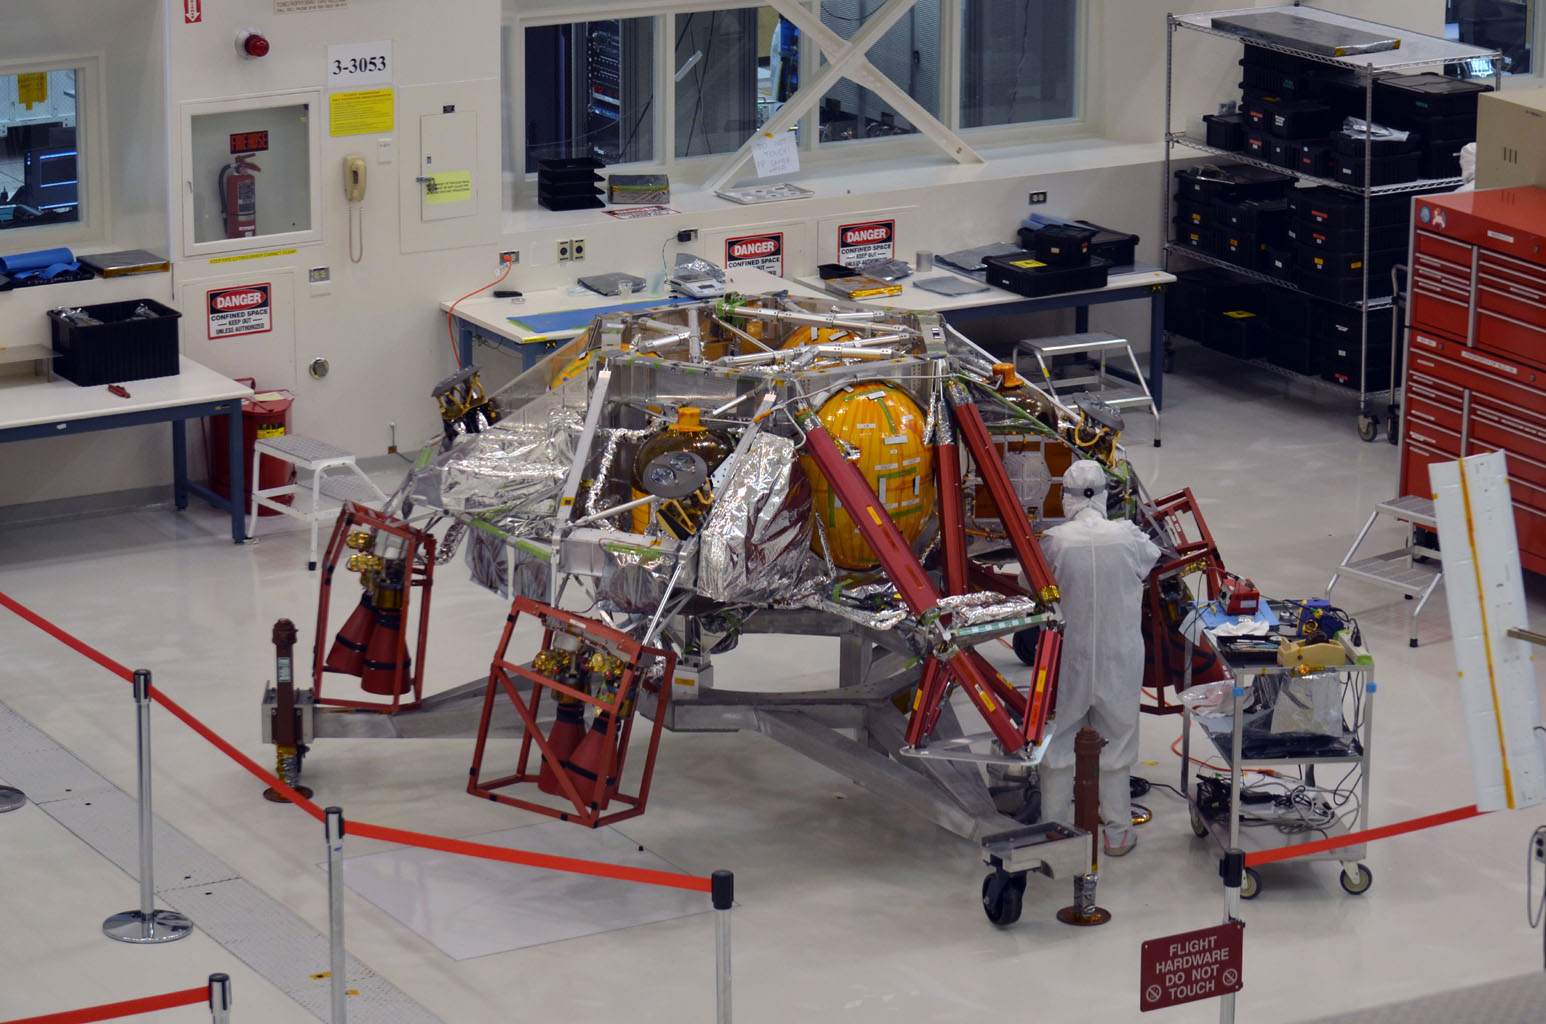 NASA begins Mars 2020 spacecraft pre-launch assembly